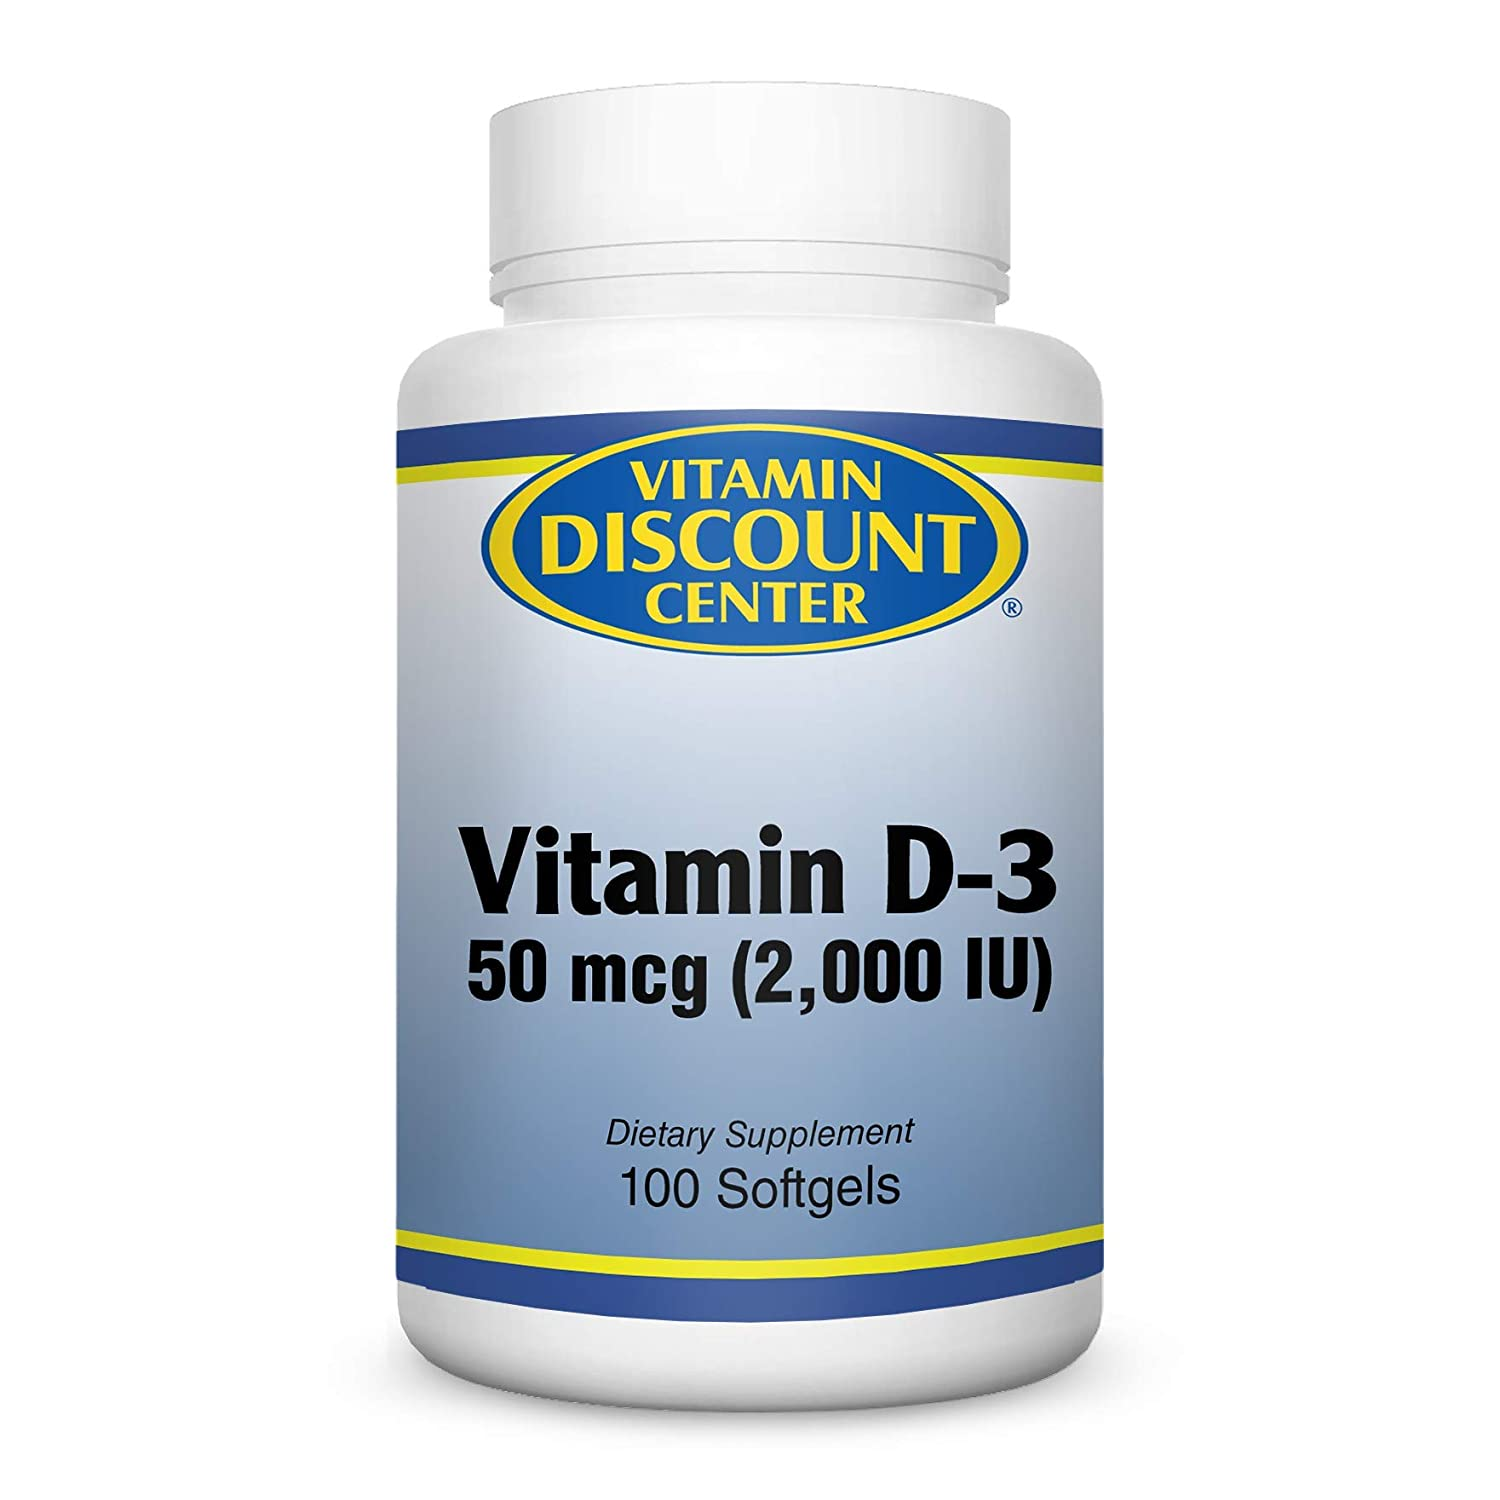 Vitamin Discount Center Vitamin D-3 2000 IU, 100 Softgels